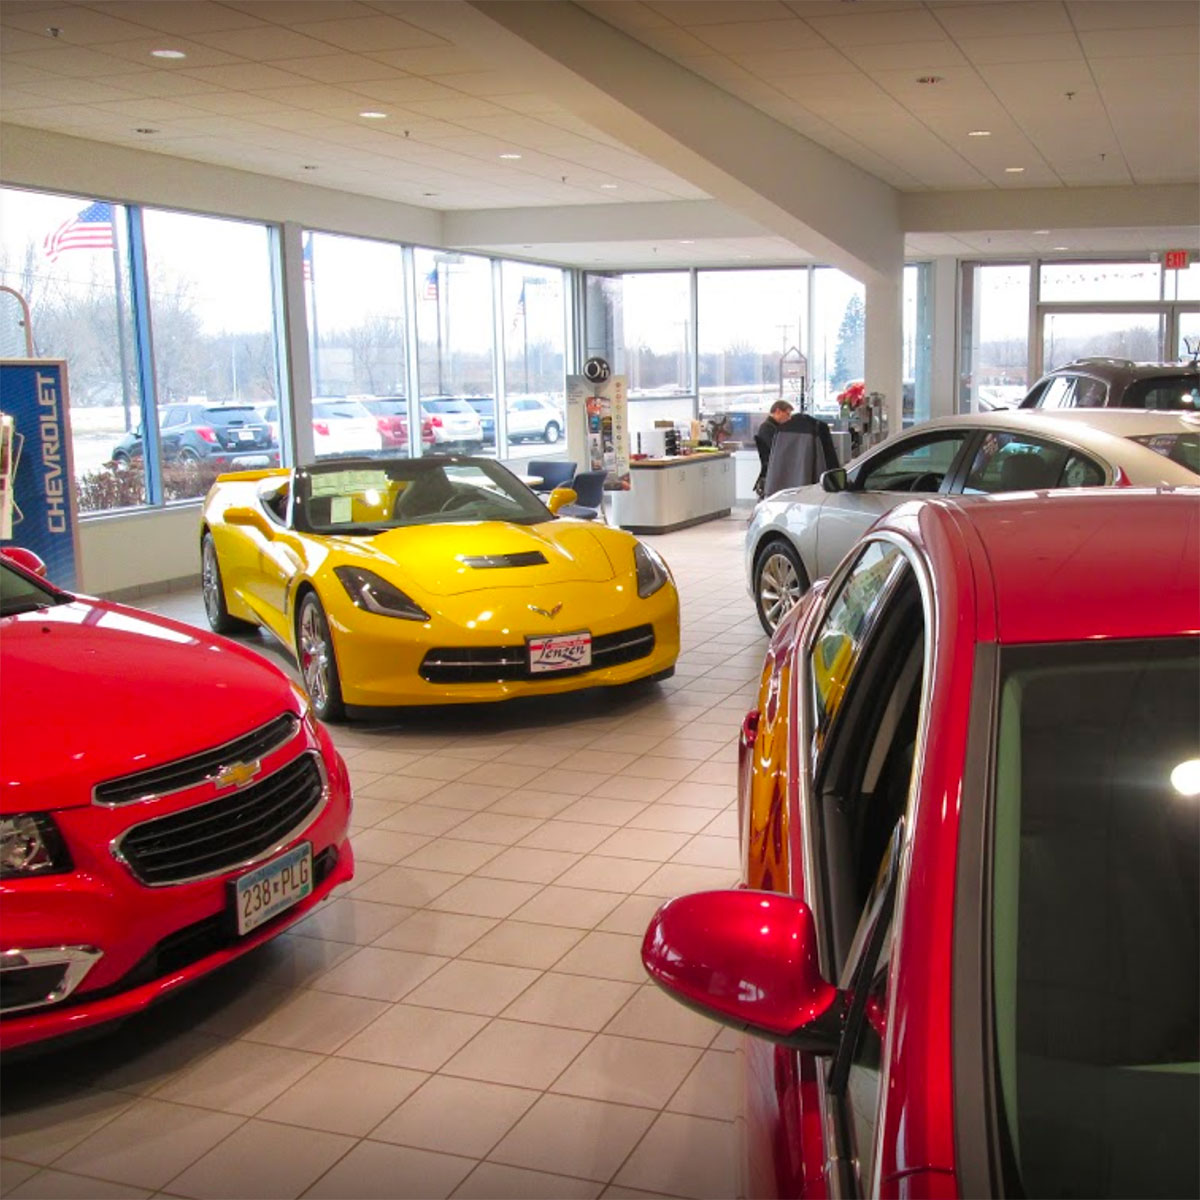 Buick Dealerships In Minnesota: Cologne Firehouse Drive-In